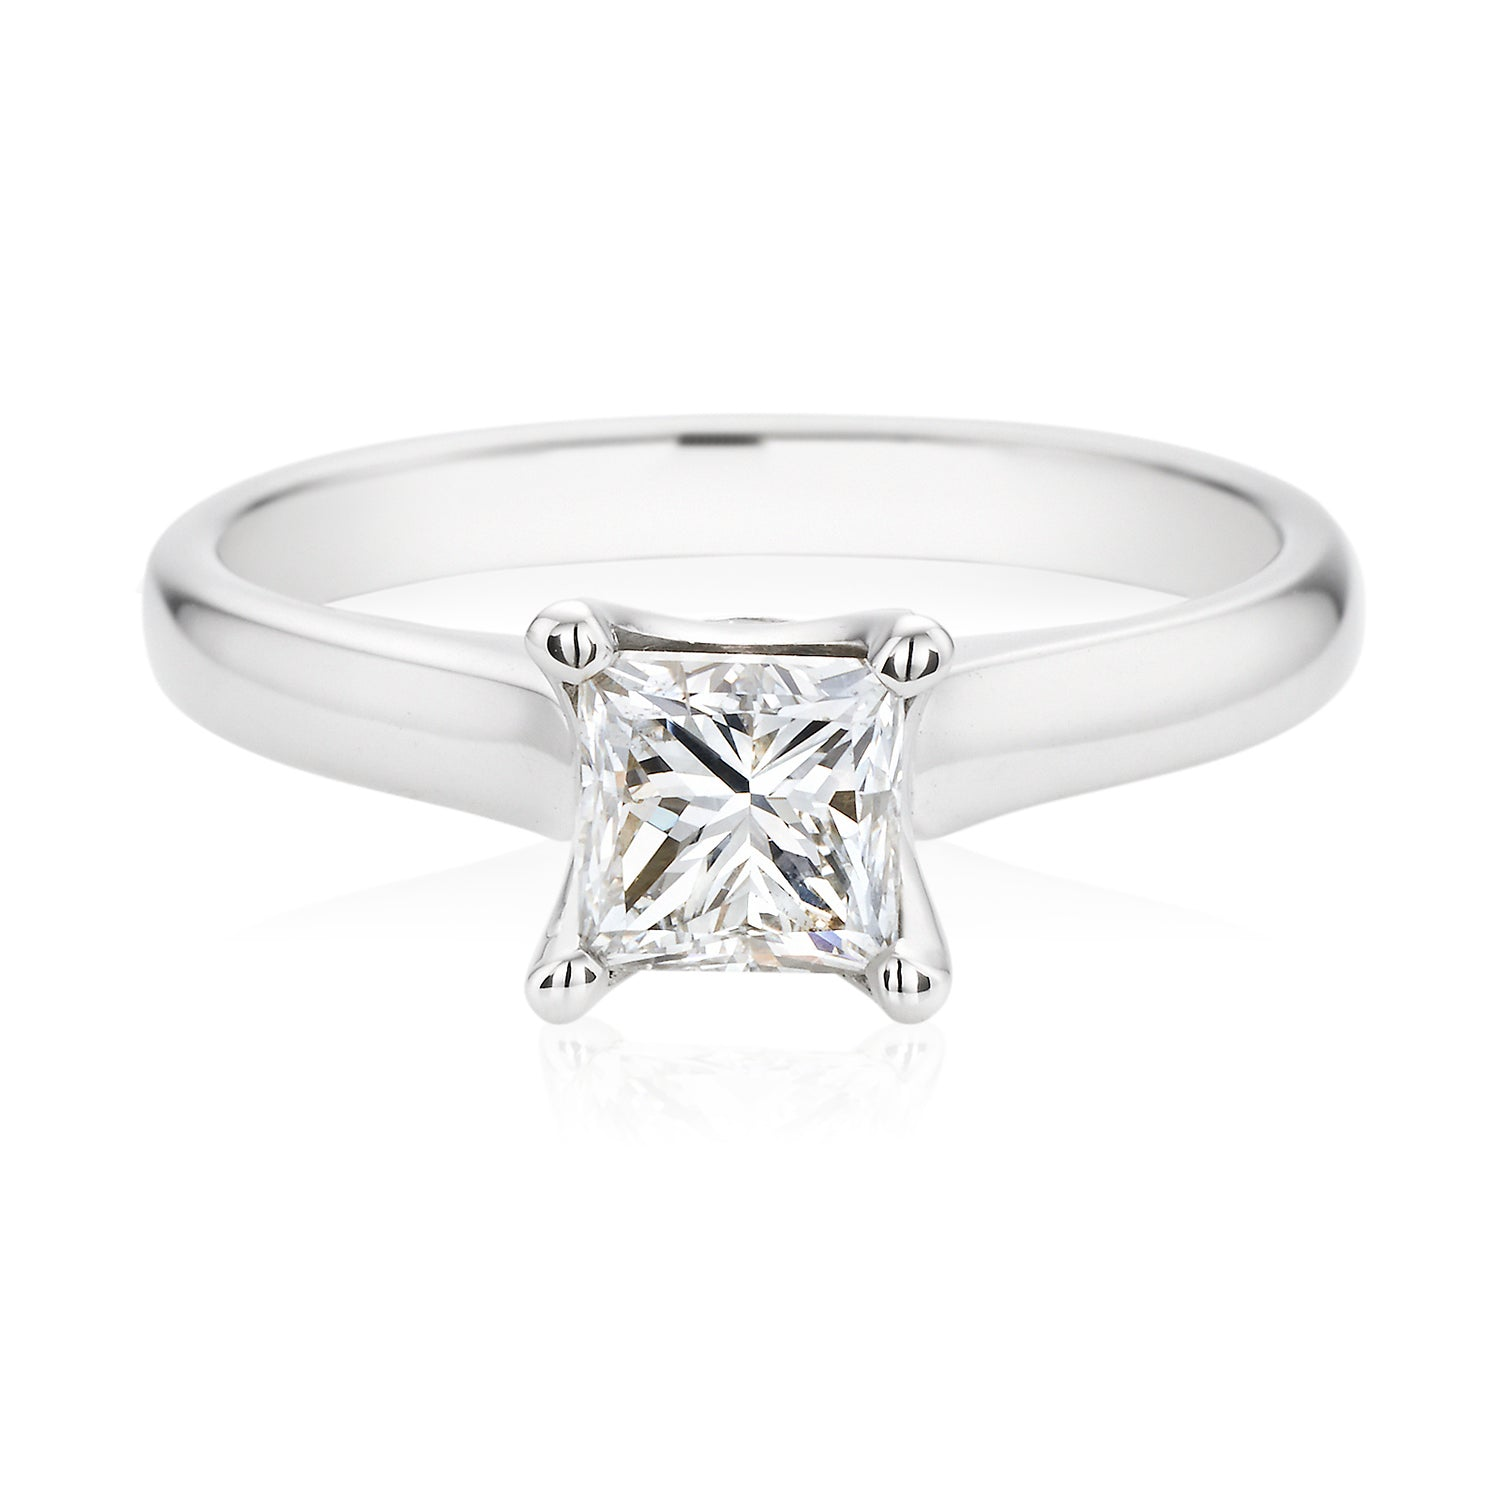 Promise 18ct White Gold Princess Cut with 1 CARAT of Diamonds